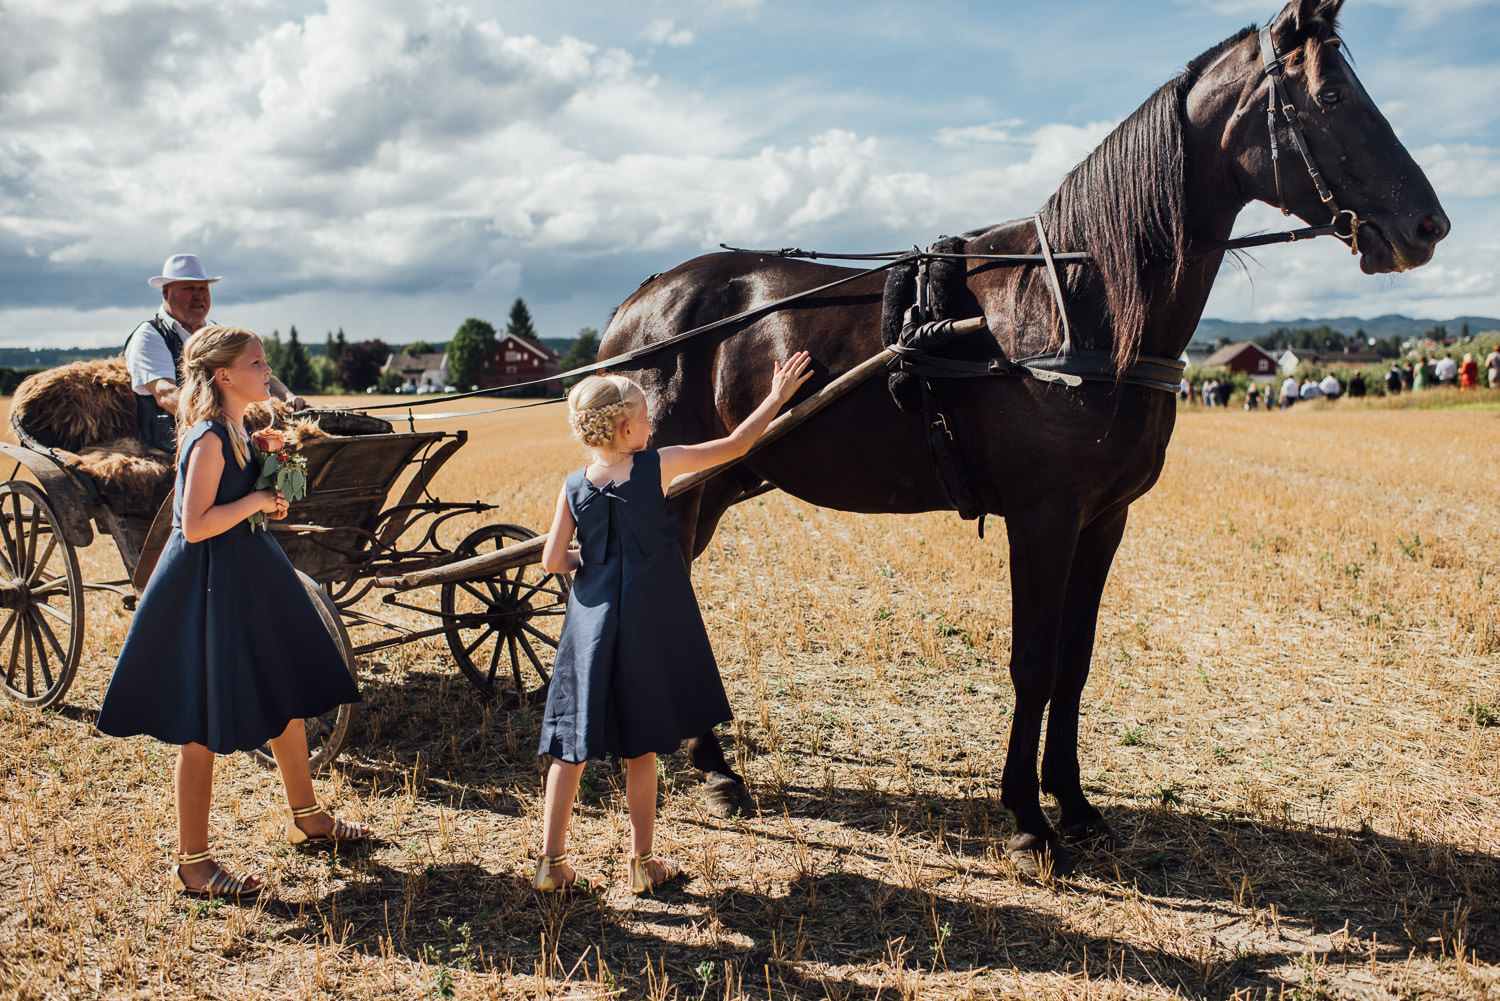 bridal carriage in Norwegian Barn Wedding by norway destination wedding photographer the shannons photography